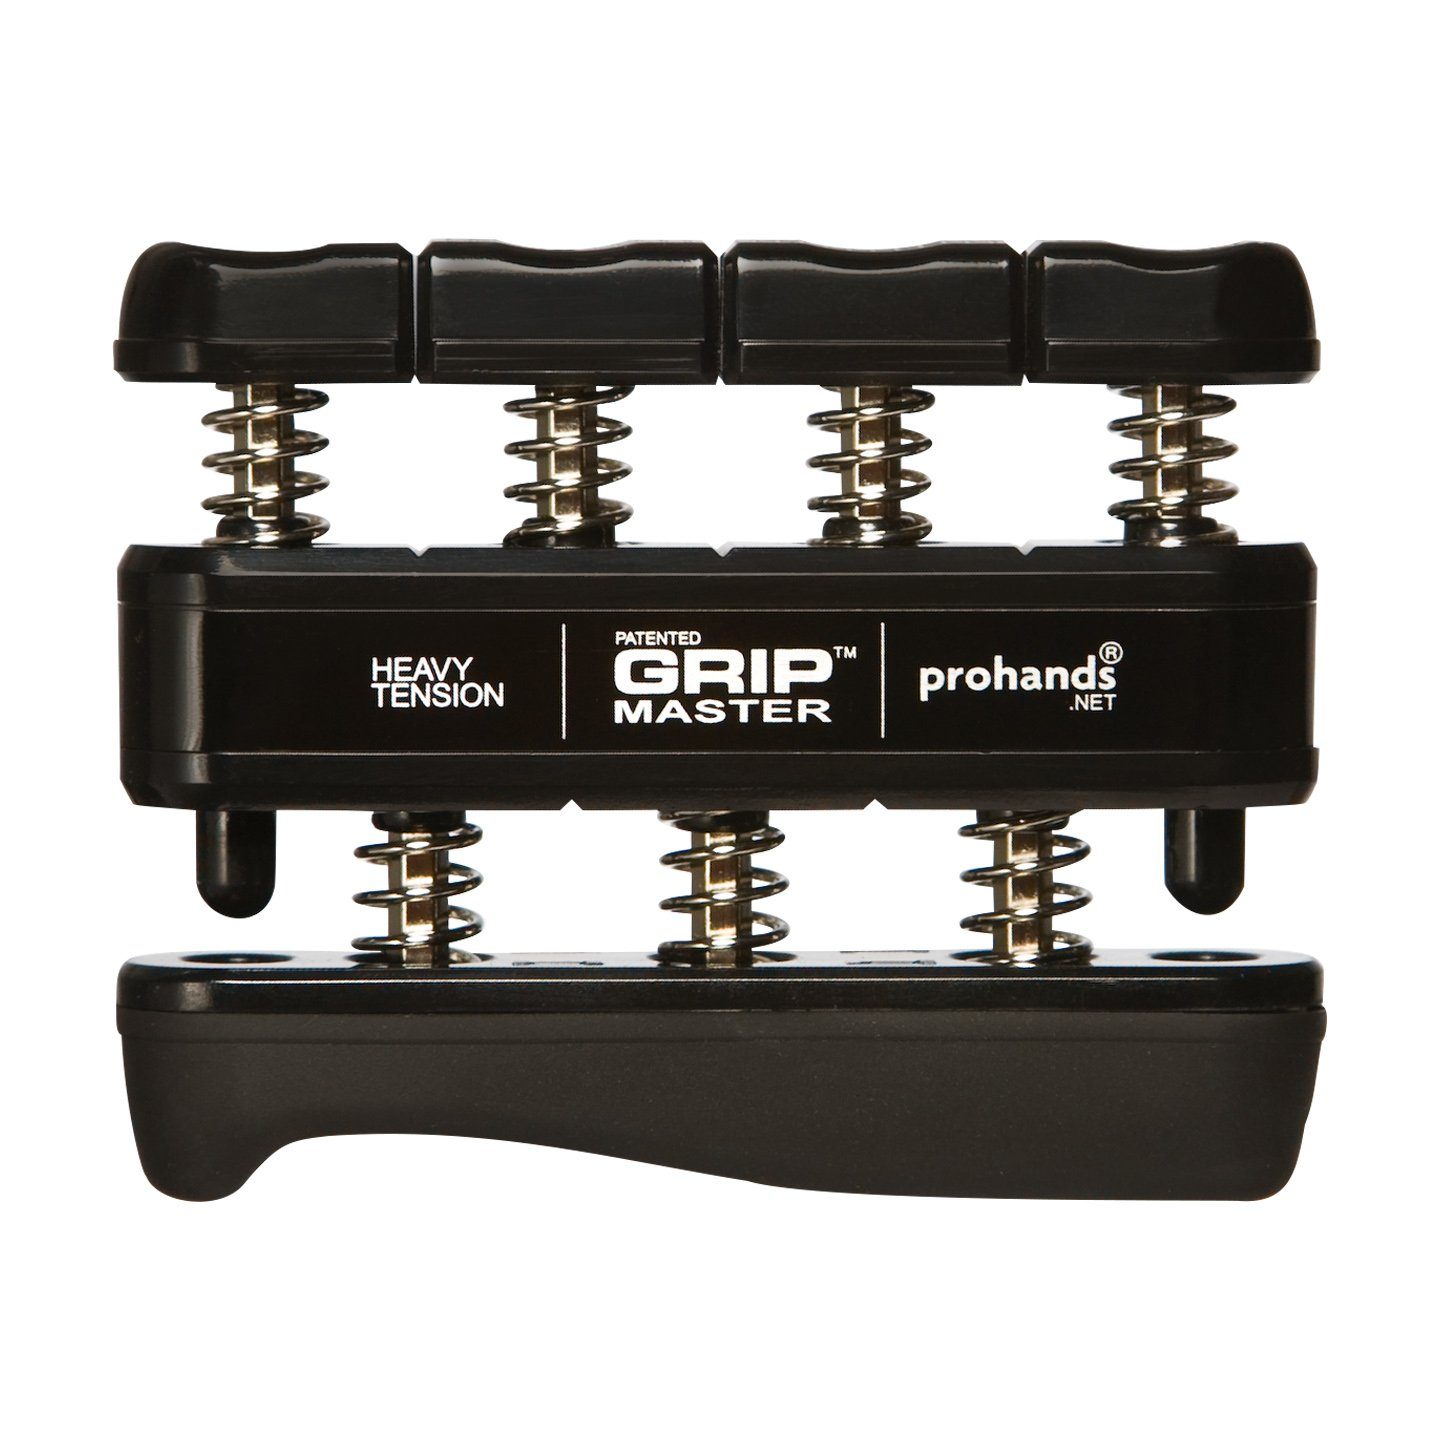 prohands by Gripmaster medical - Aparato entrenador de dedos